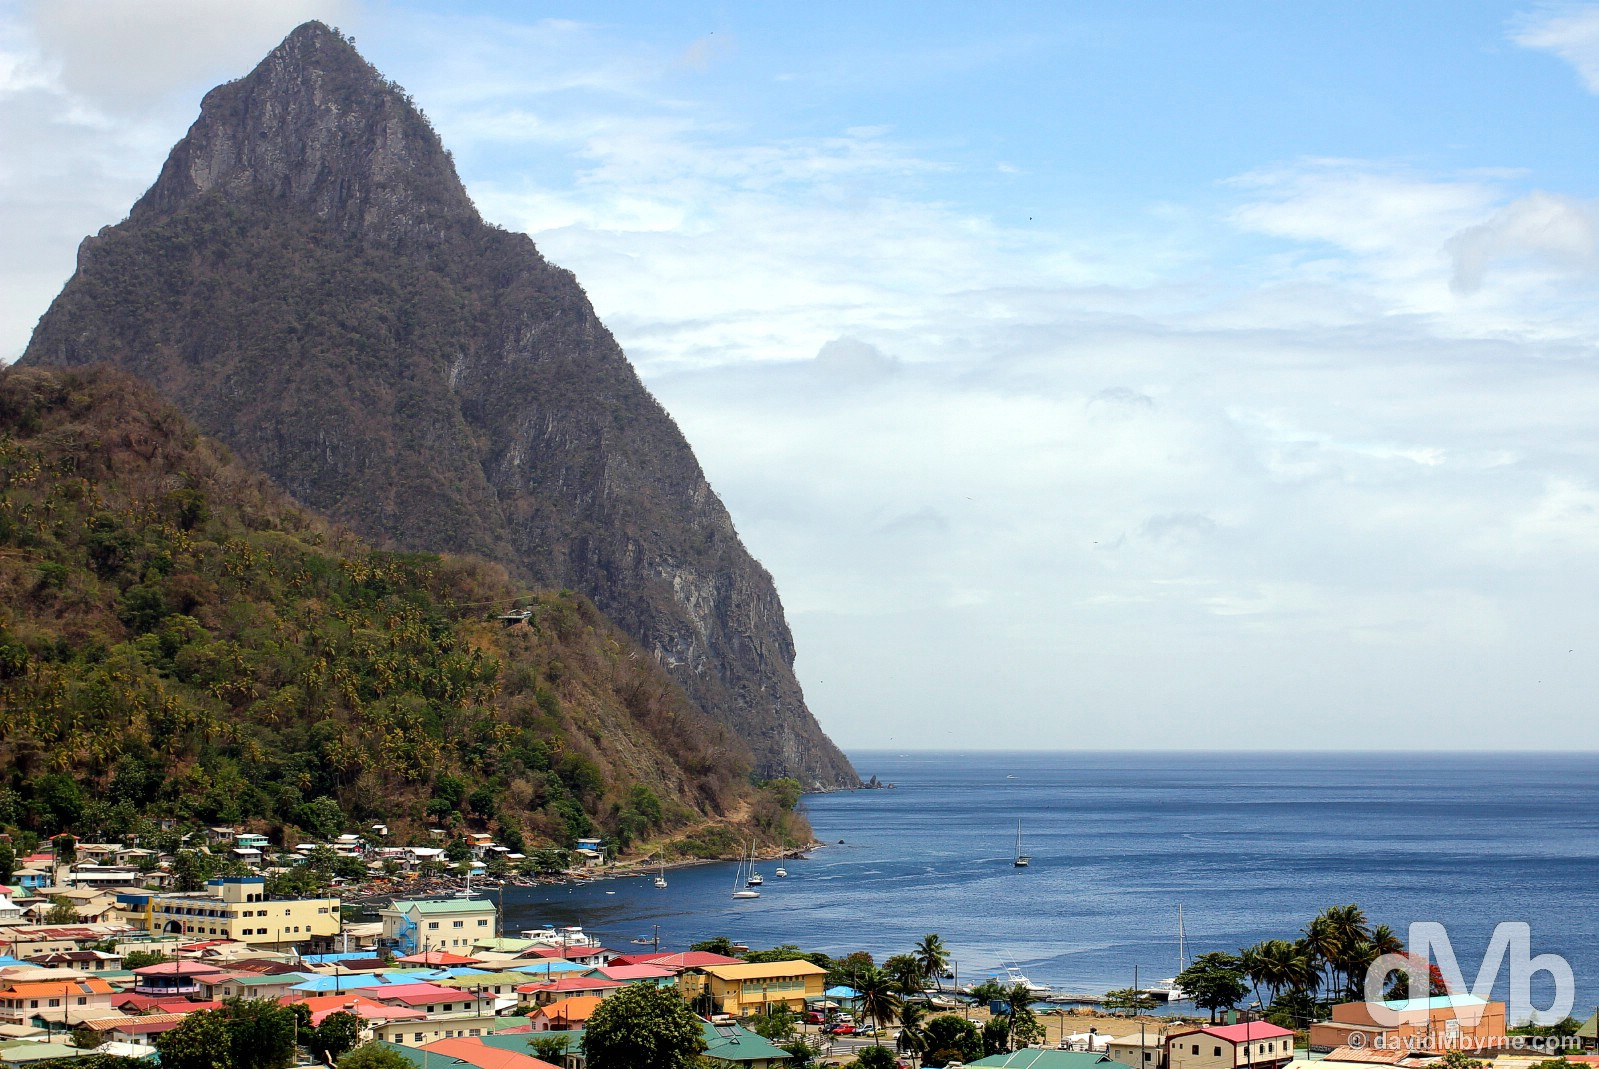 Petit Piton & the town of Soufriere in southeastern St. Lucia, Lesser Antilles. June 15, 2015.